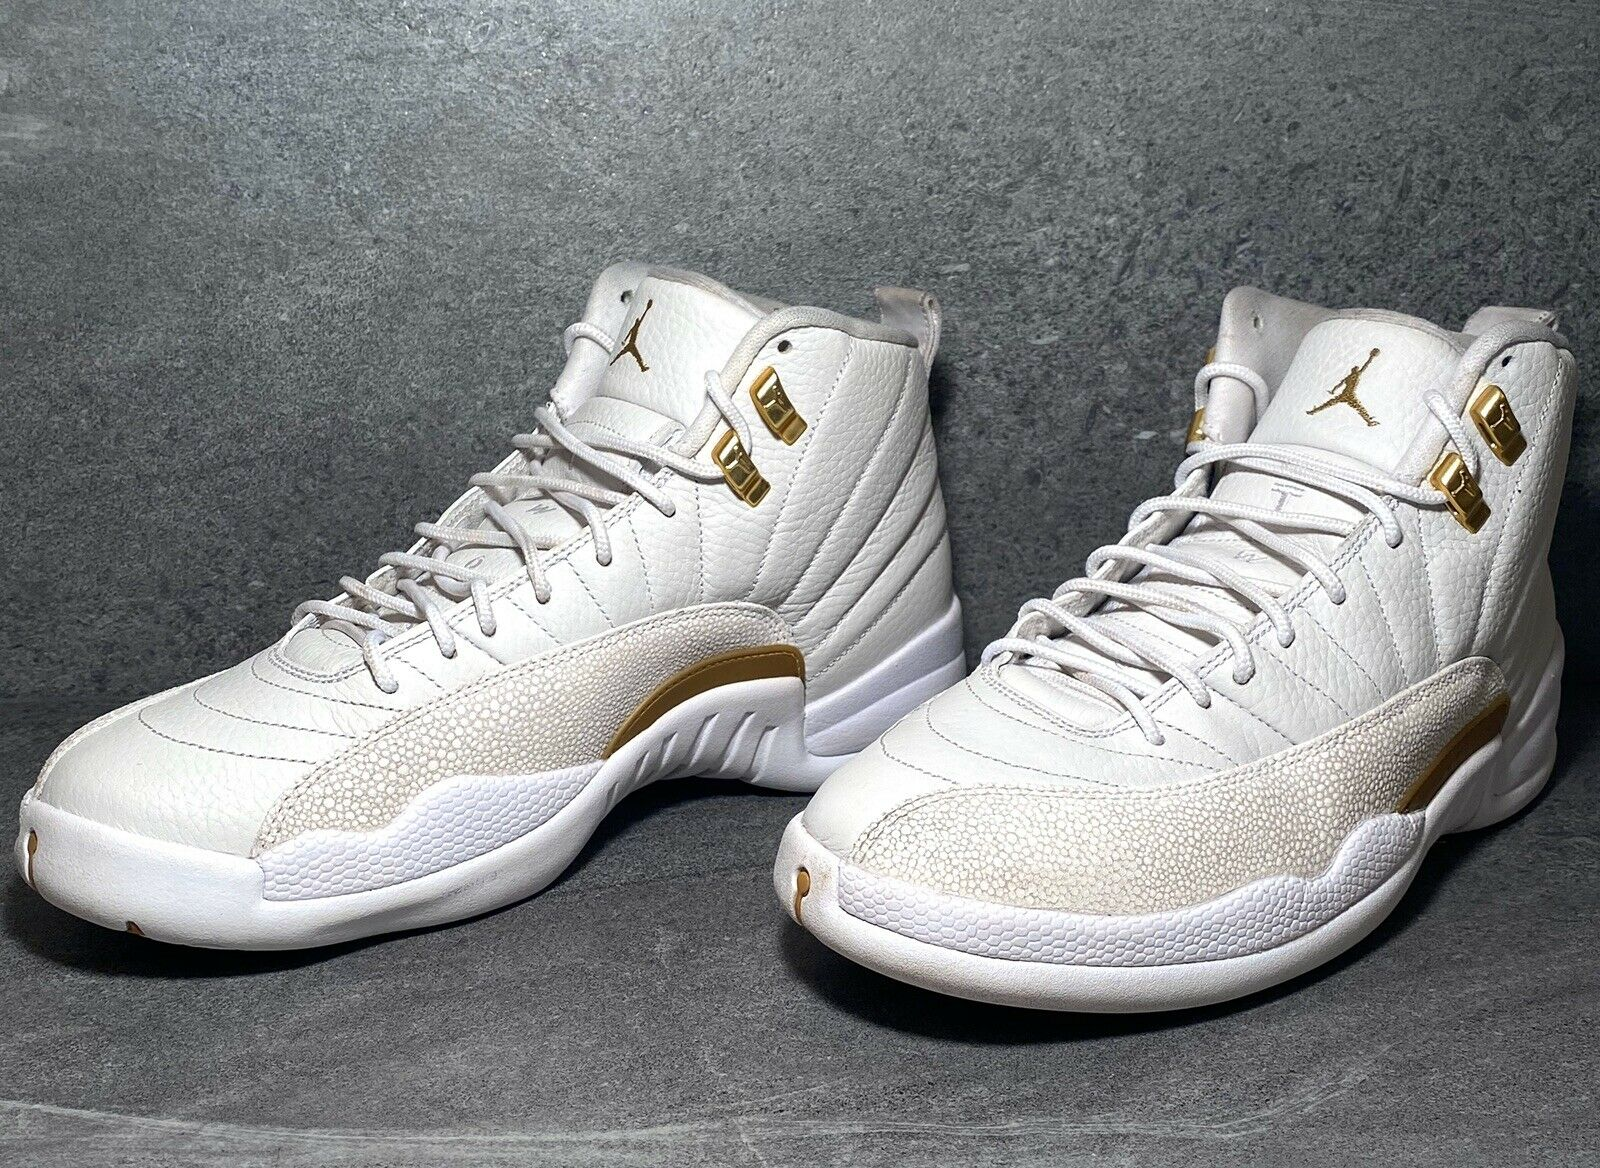 air jordan 12 retro ovo white metallic gold white